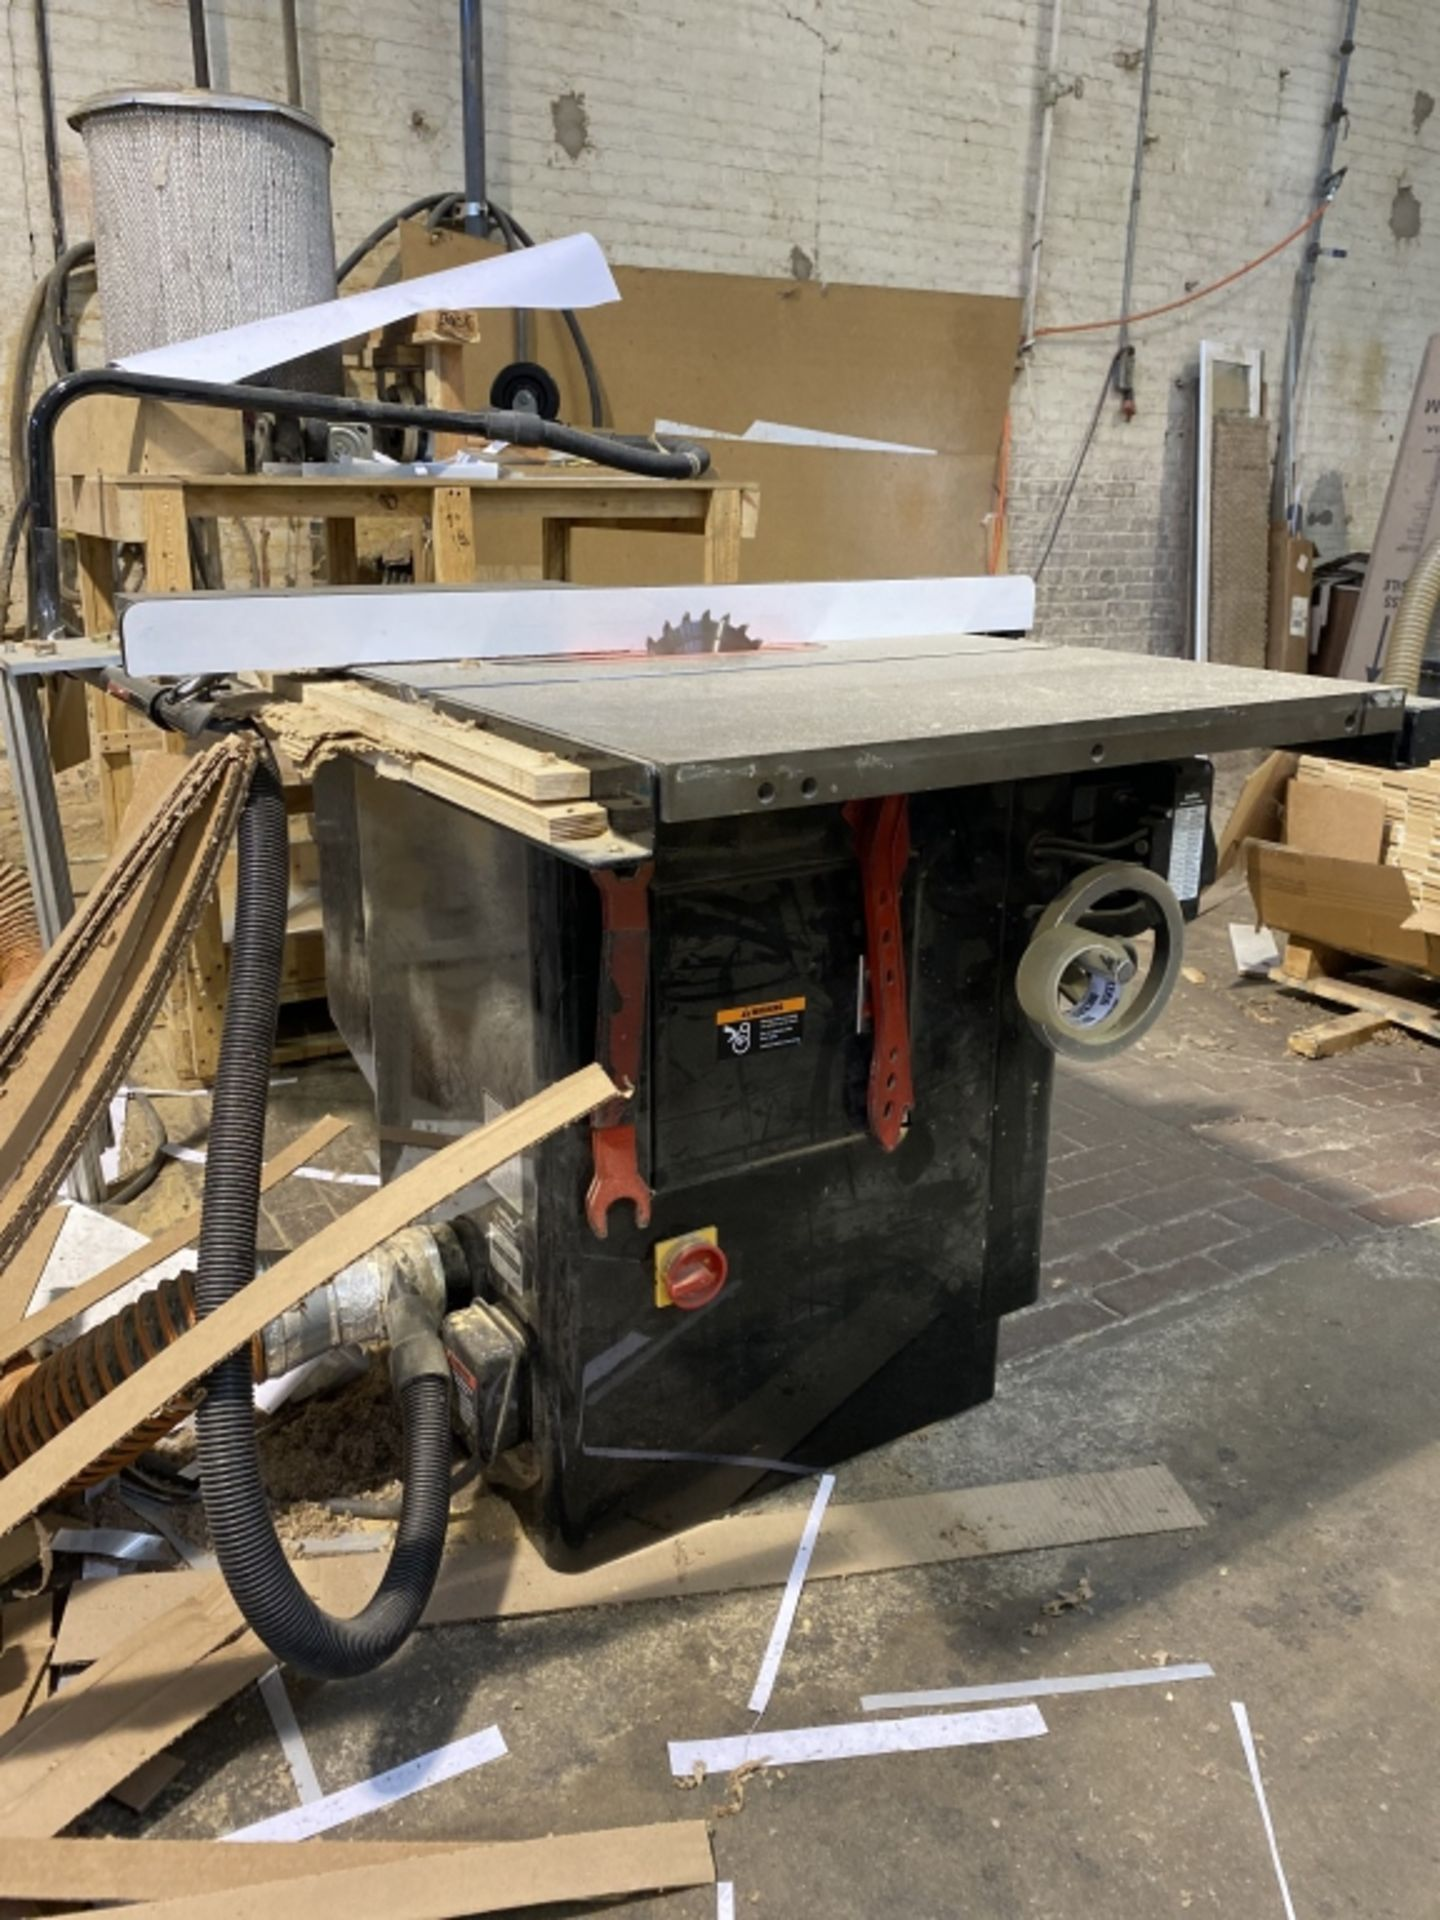 Lot 1015 - Saw Stop Table Saw with Fence